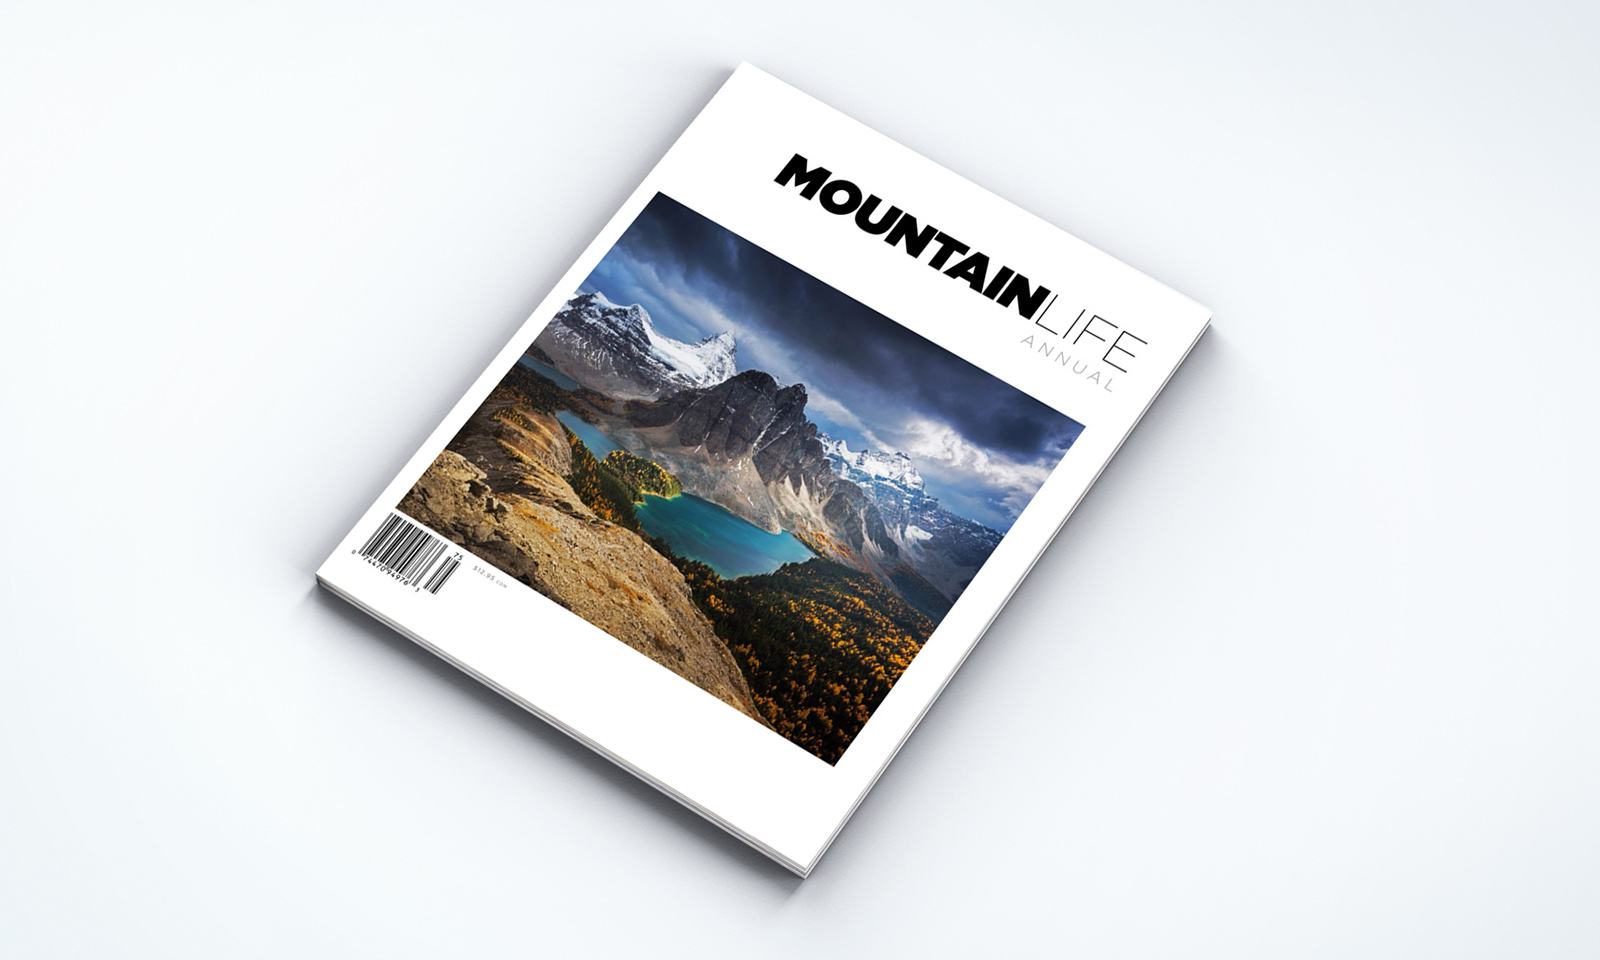 Purchase the Mountain Life Annual online at mountainlifemedia.ca